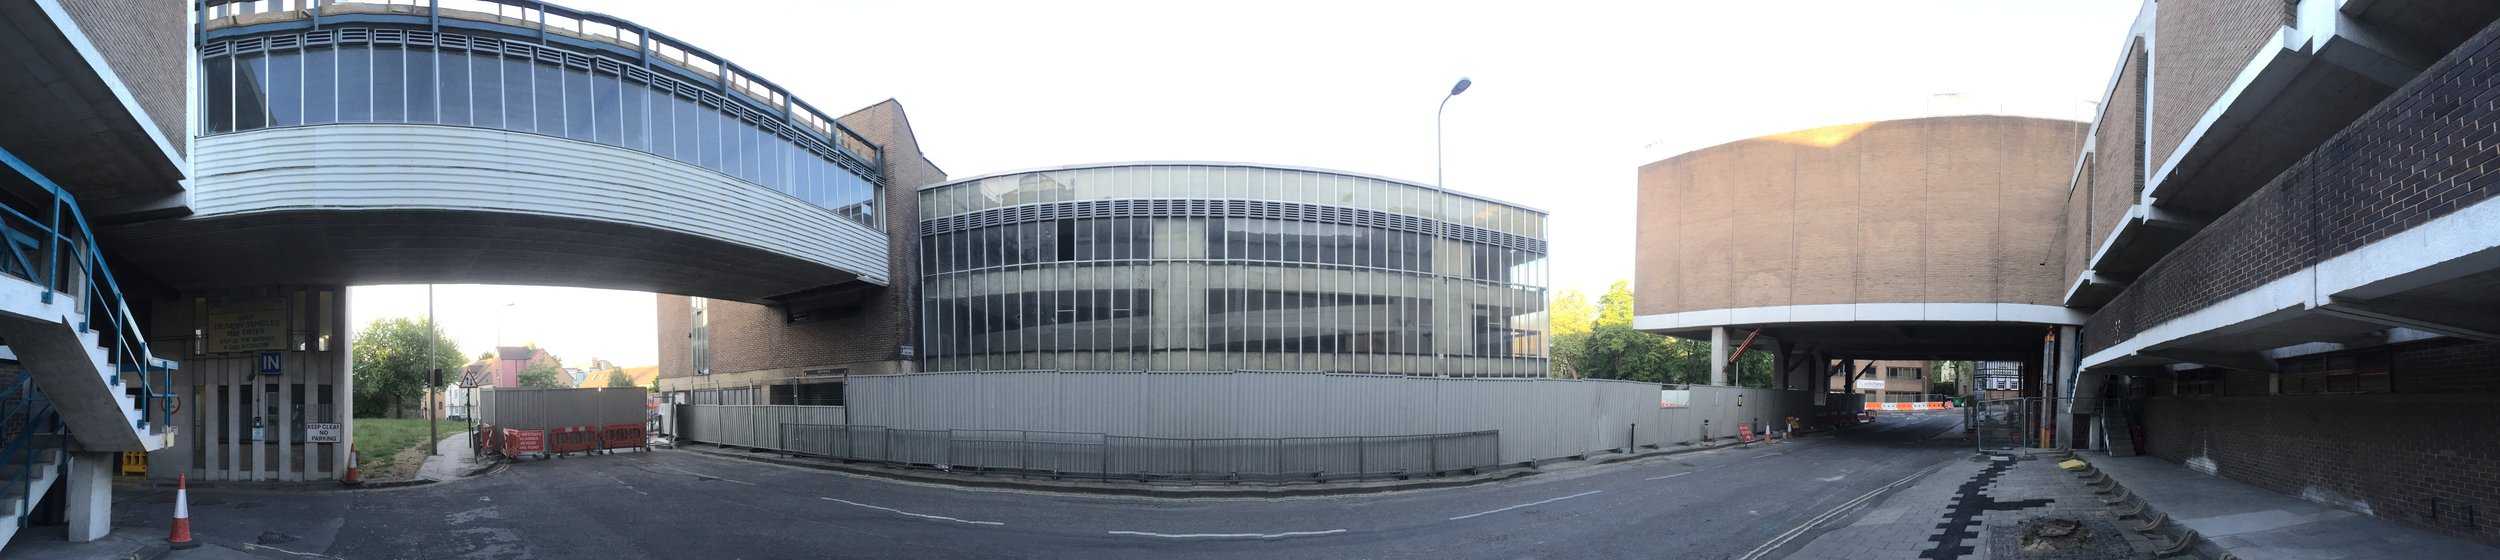 the 1972 Westgate Centre, Oxford prior to demolition in 2015